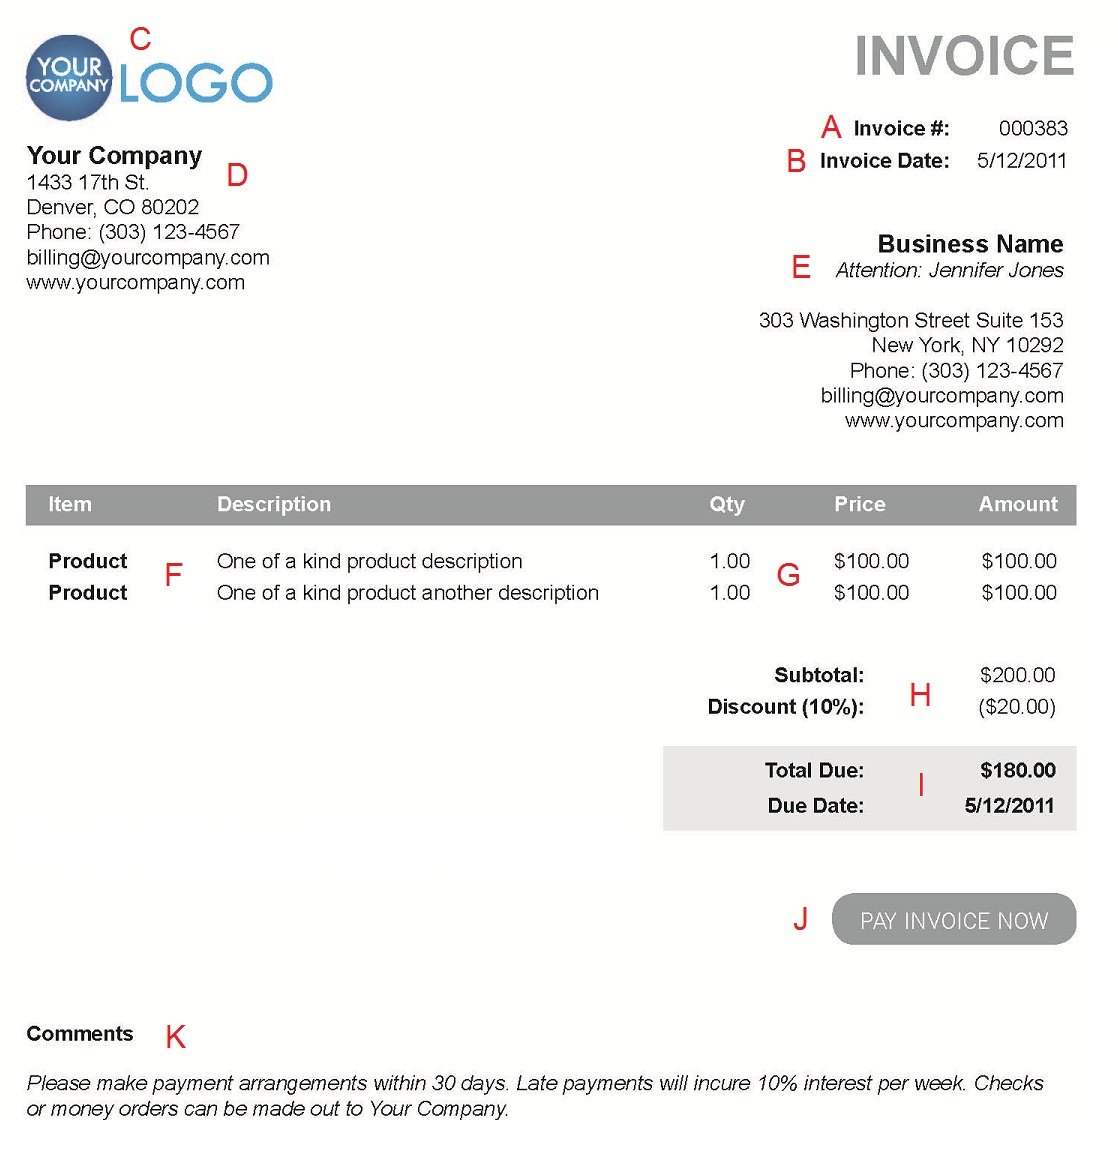 Hucareus  Splendid The  Different Sections Of An Electronic Payment Invoice With Engaging A  With Alluring Proforma Invoice For Export Also Free Invoice Form Template In Addition Standard Invoice Template Free And Paypal Payment Invoice As Well As How To Write Invoices Additionally Where Can I Find Dealer Invoice Price From Paysimplecom With Hucareus  Engaging The  Different Sections Of An Electronic Payment Invoice With Alluring A  And Splendid Proforma Invoice For Export Also Free Invoice Form Template In Addition Standard Invoice Template Free From Paysimplecom